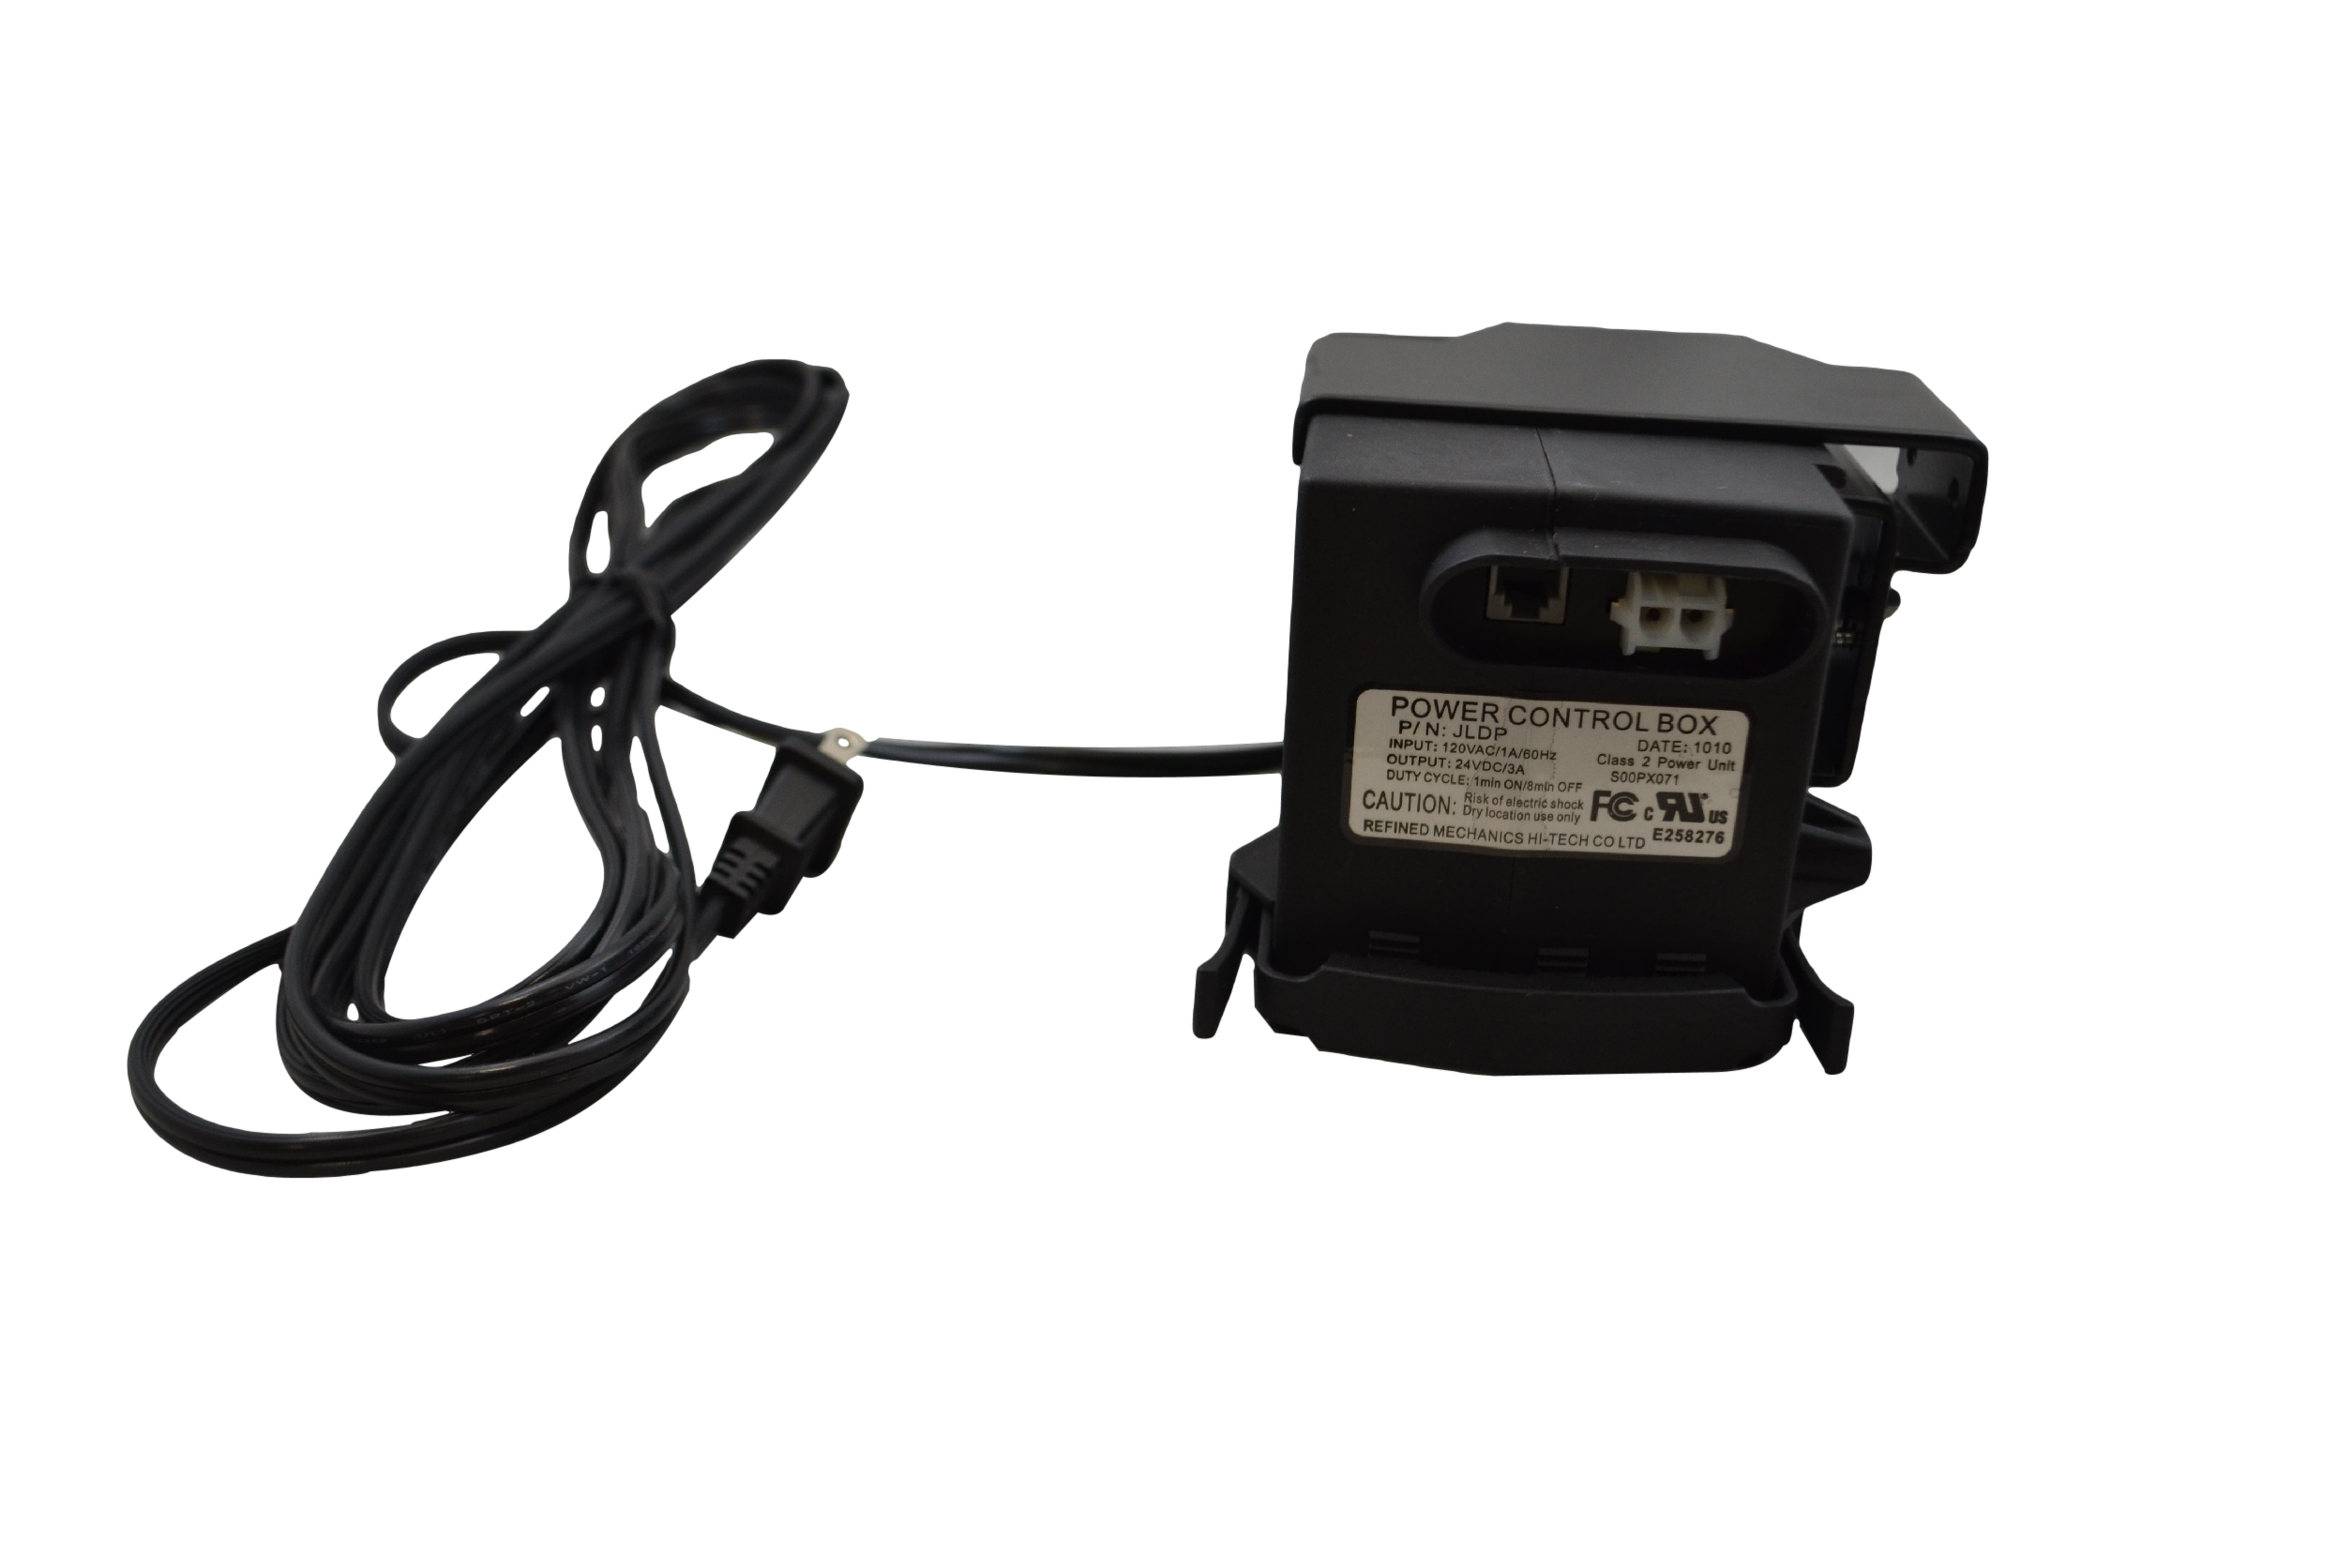 Okin Jldp Power Supply Control Box For Power Recliners